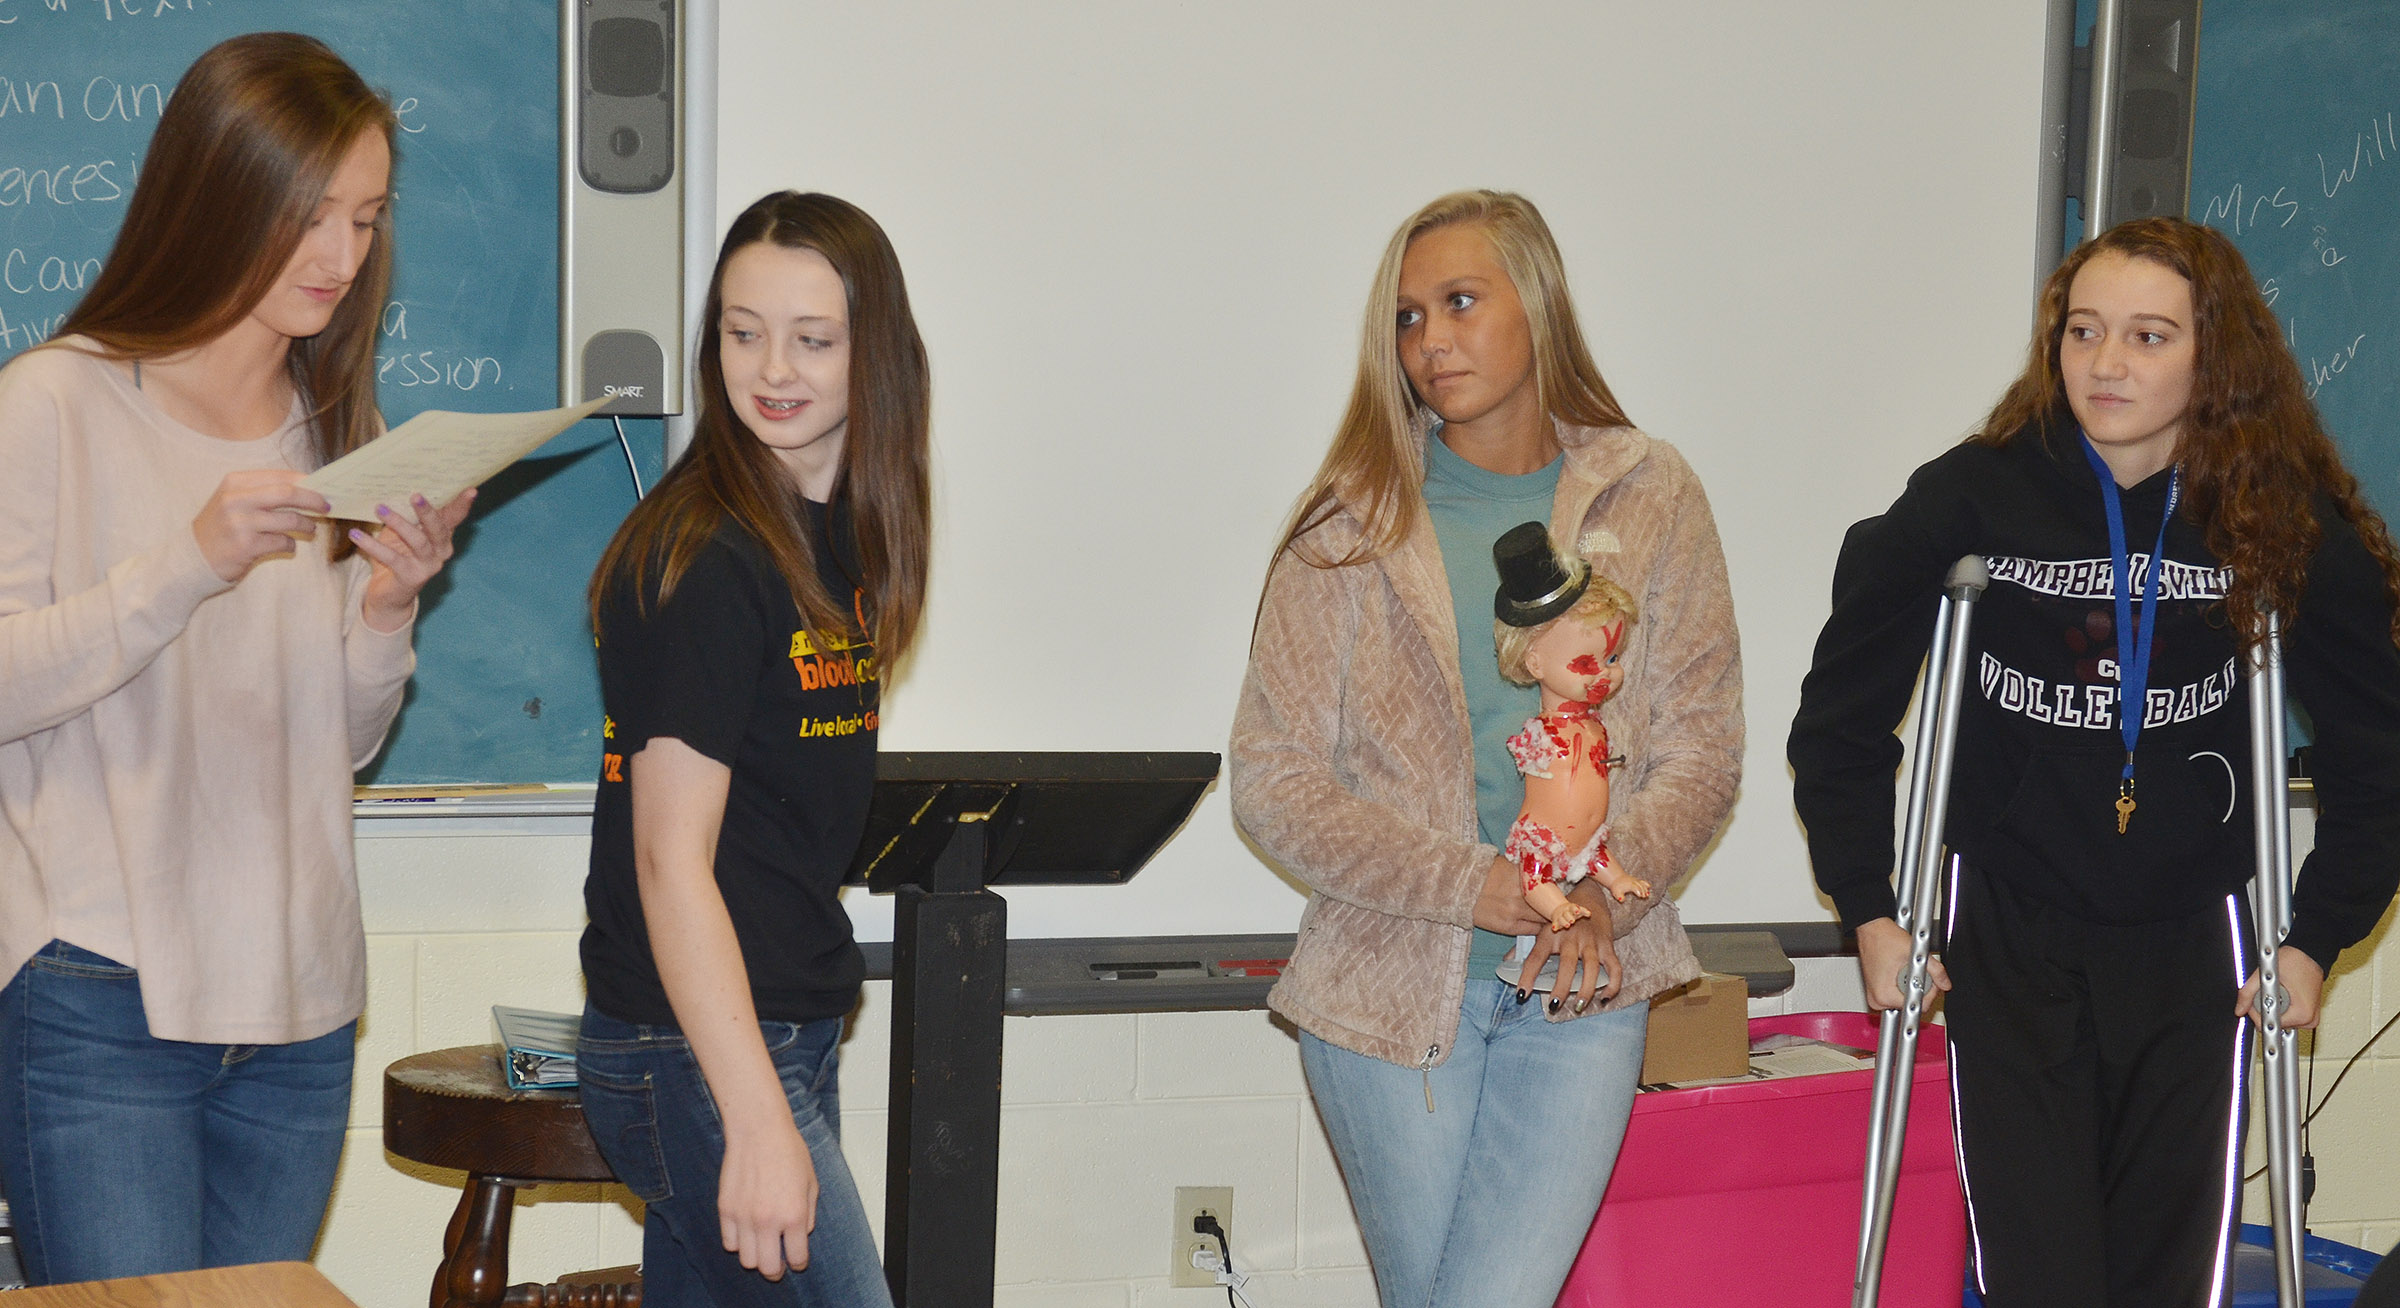 CHS juniors, from left, Samantha Mason, Caleigh Bright, Tatem Wiseman and Salena Ritchie present their monster to their classmates.